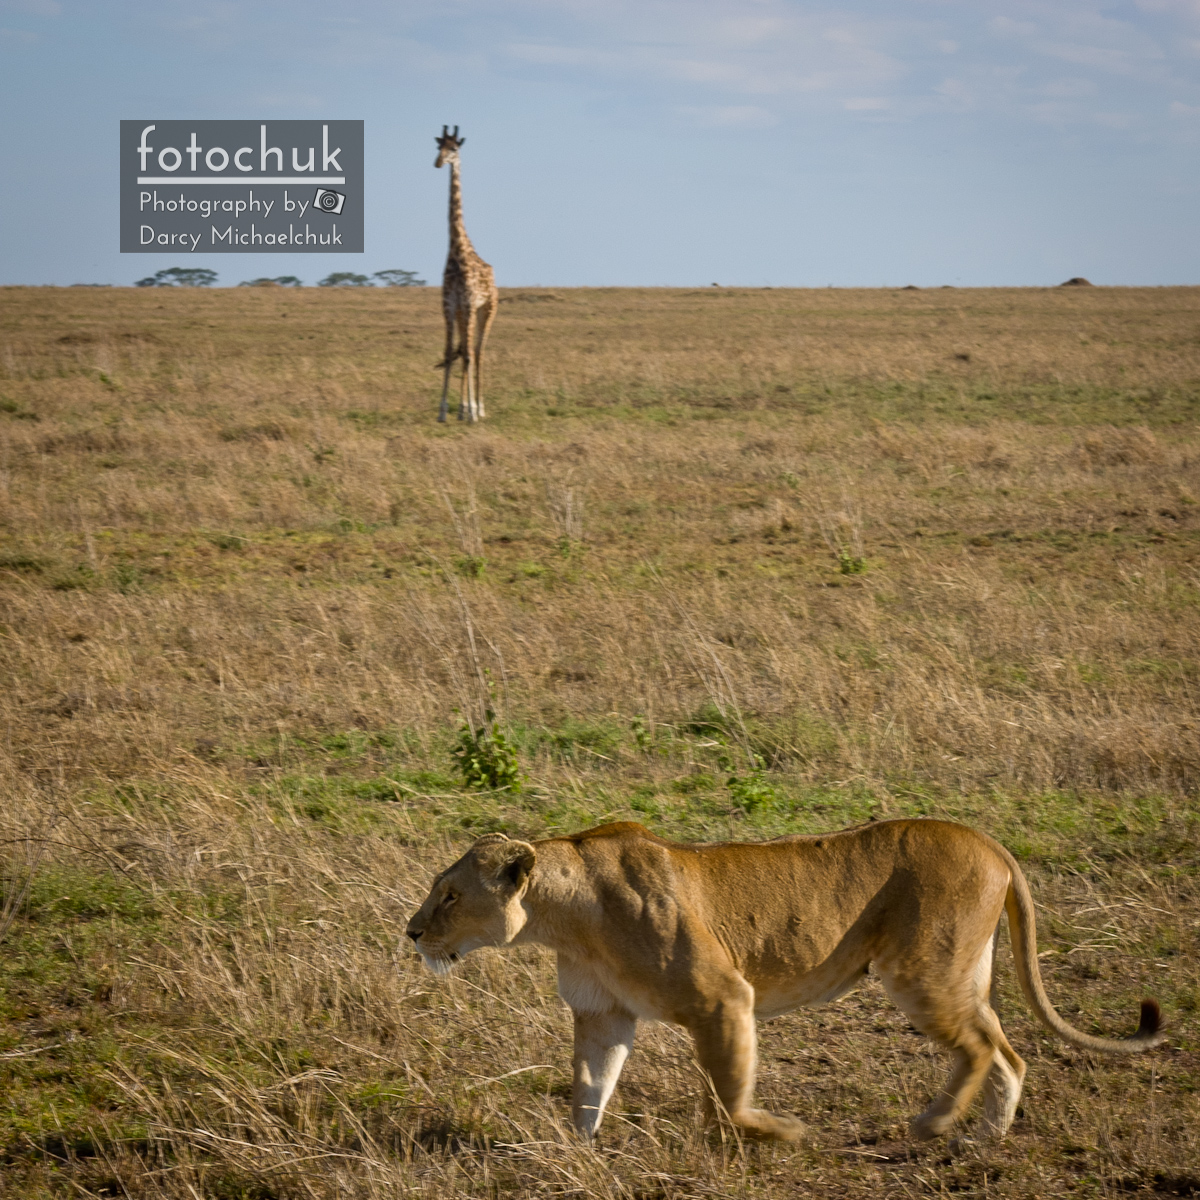 Giraffe Waits for Lioness to Pass